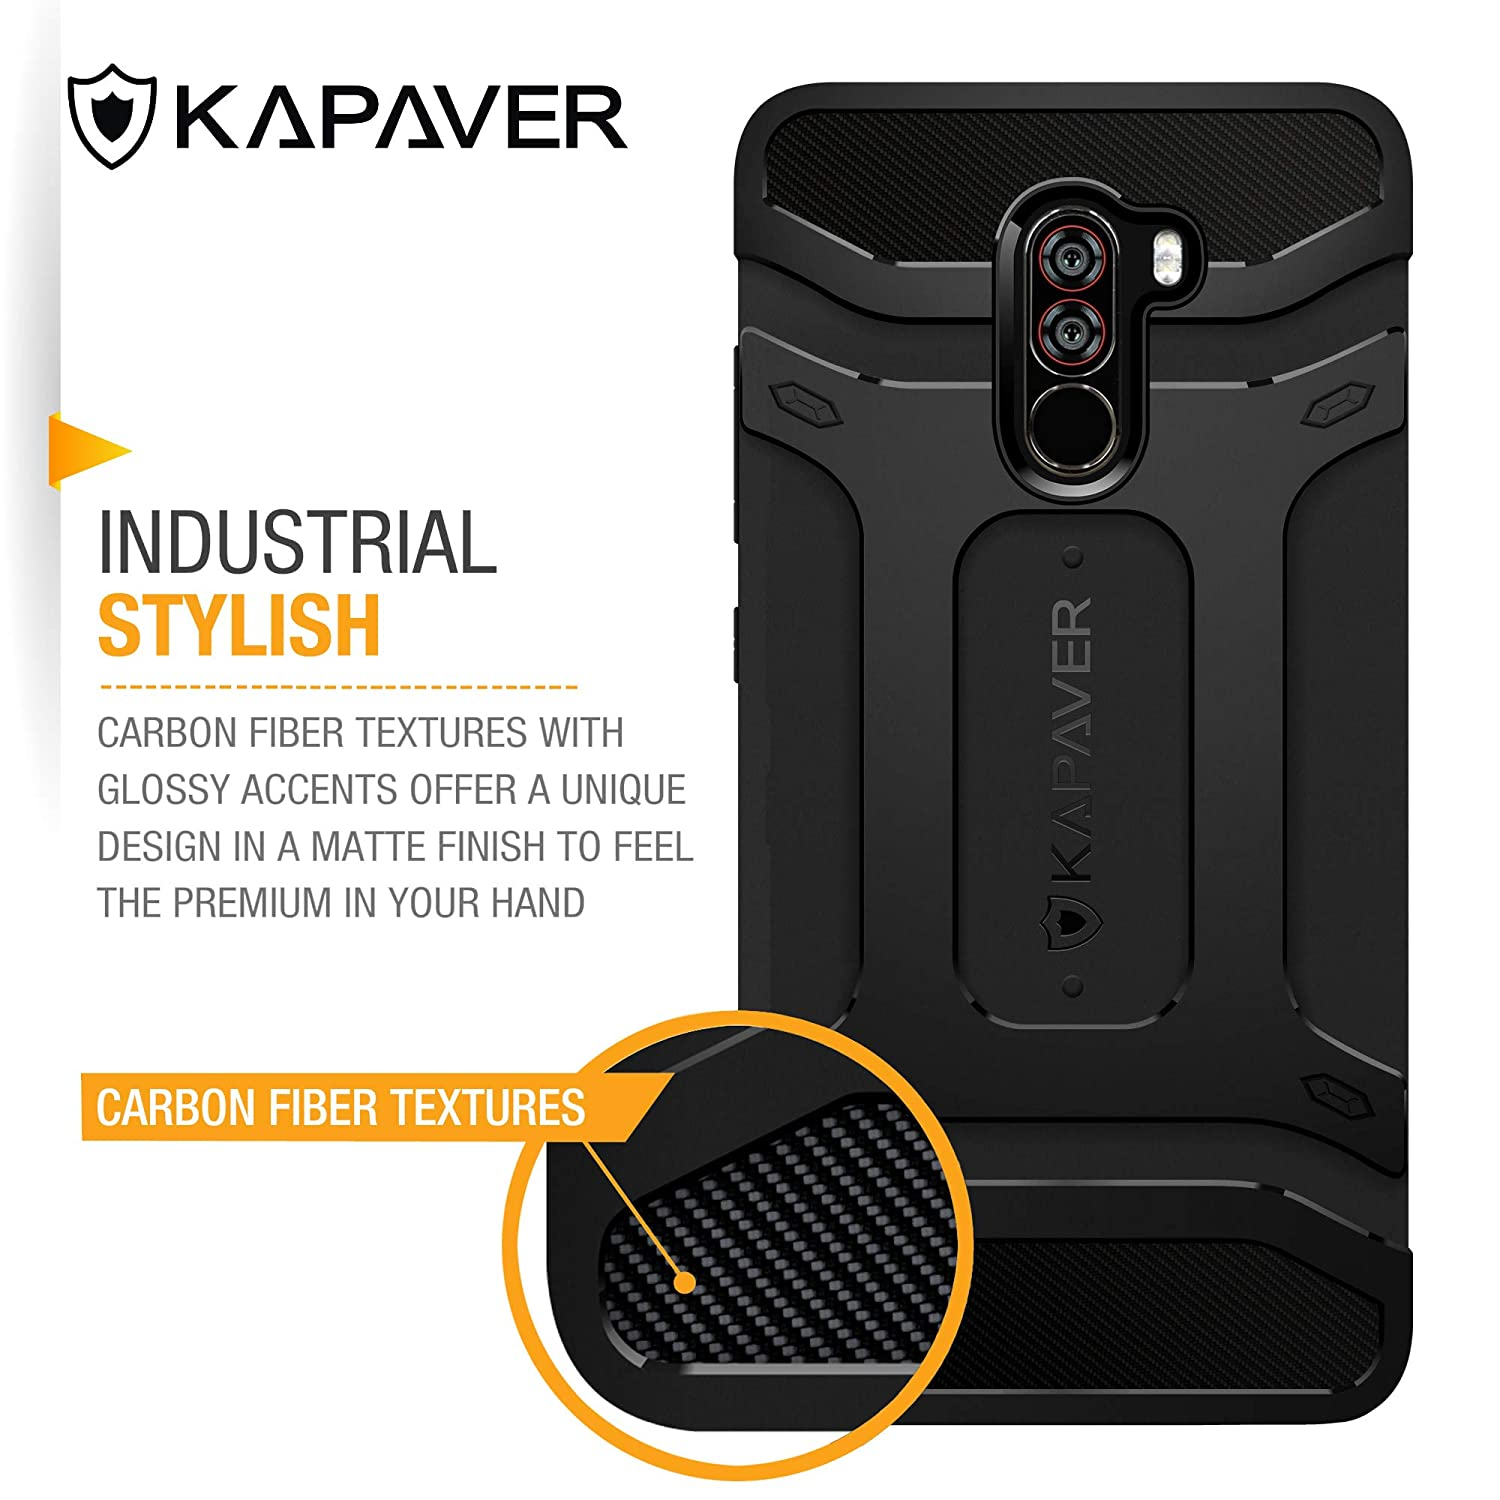 superior quality 69228 5f4fc KAPAVER® Xiaomi Poco F1 Phone Rugged Back Cover Case MIL-STD 810G  Officially Drop Tested Solid Black Shock Proof Slim Armor Patent Design  (Only for ...